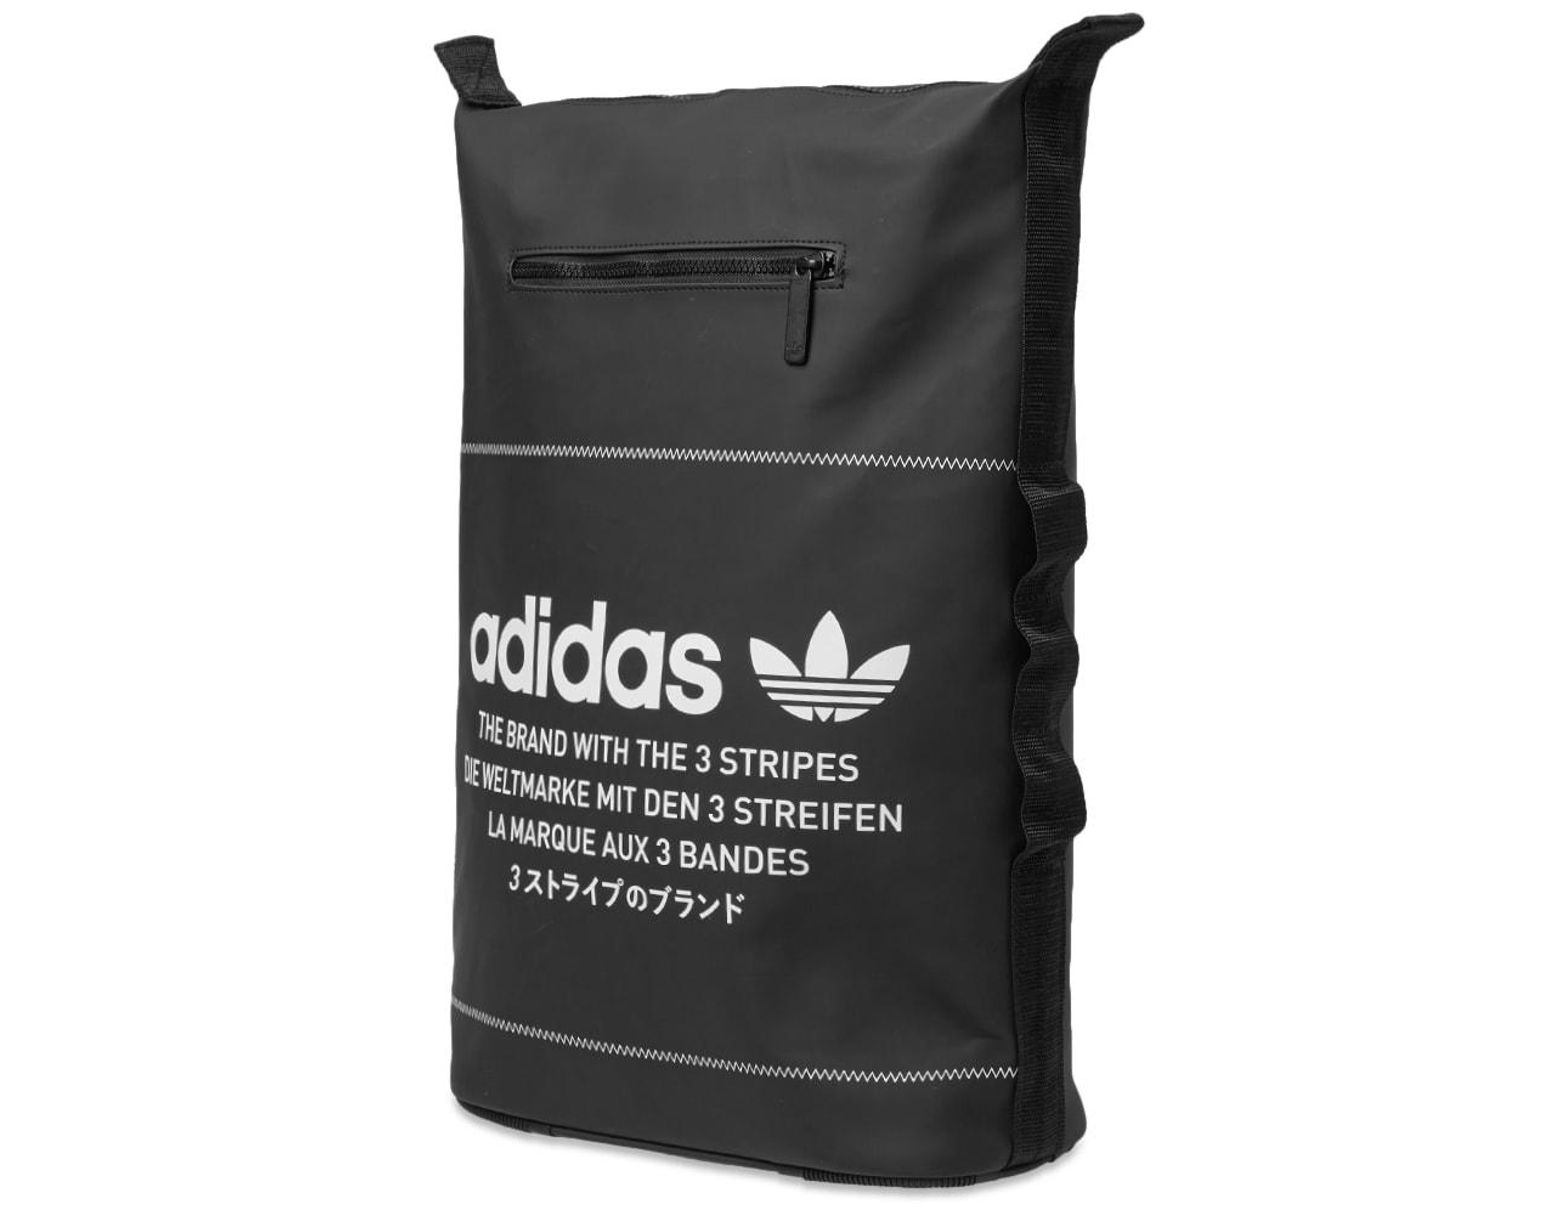 8a7011094 adidas Nmd Backpack in Black for Men - Save 5% - Lyst